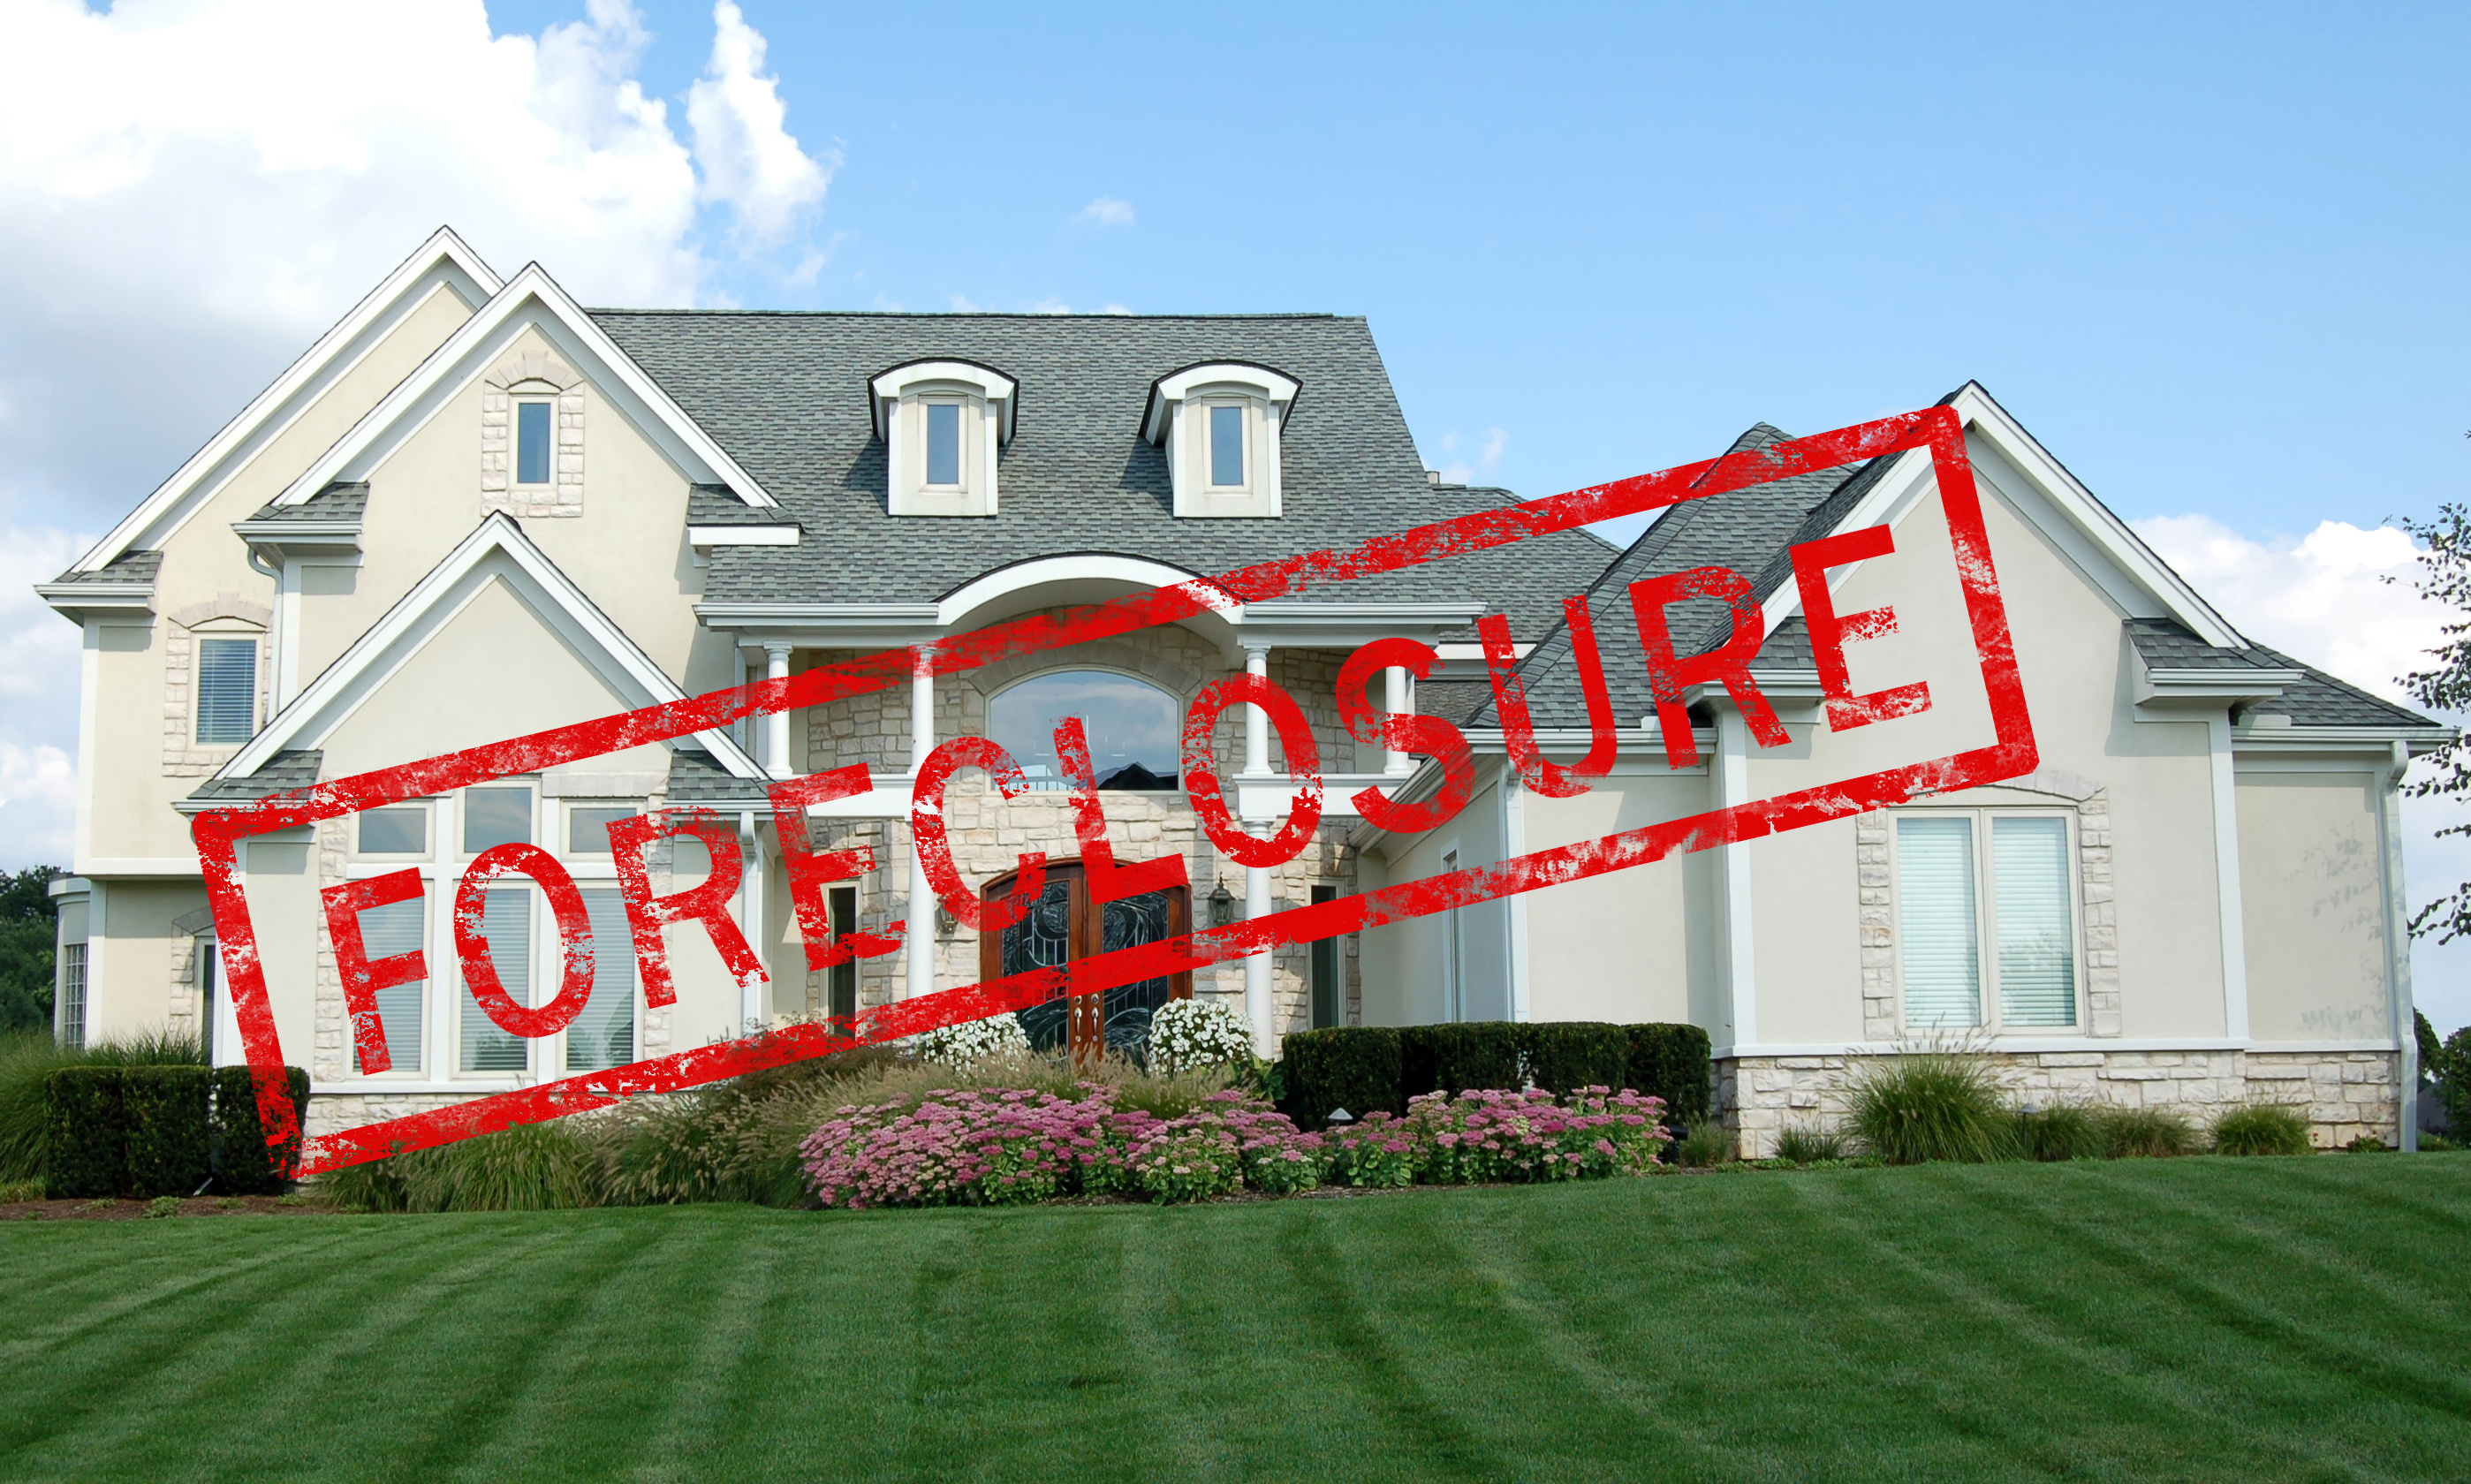 Call Anderson & Associates when you need valuations of Clark foreclosures